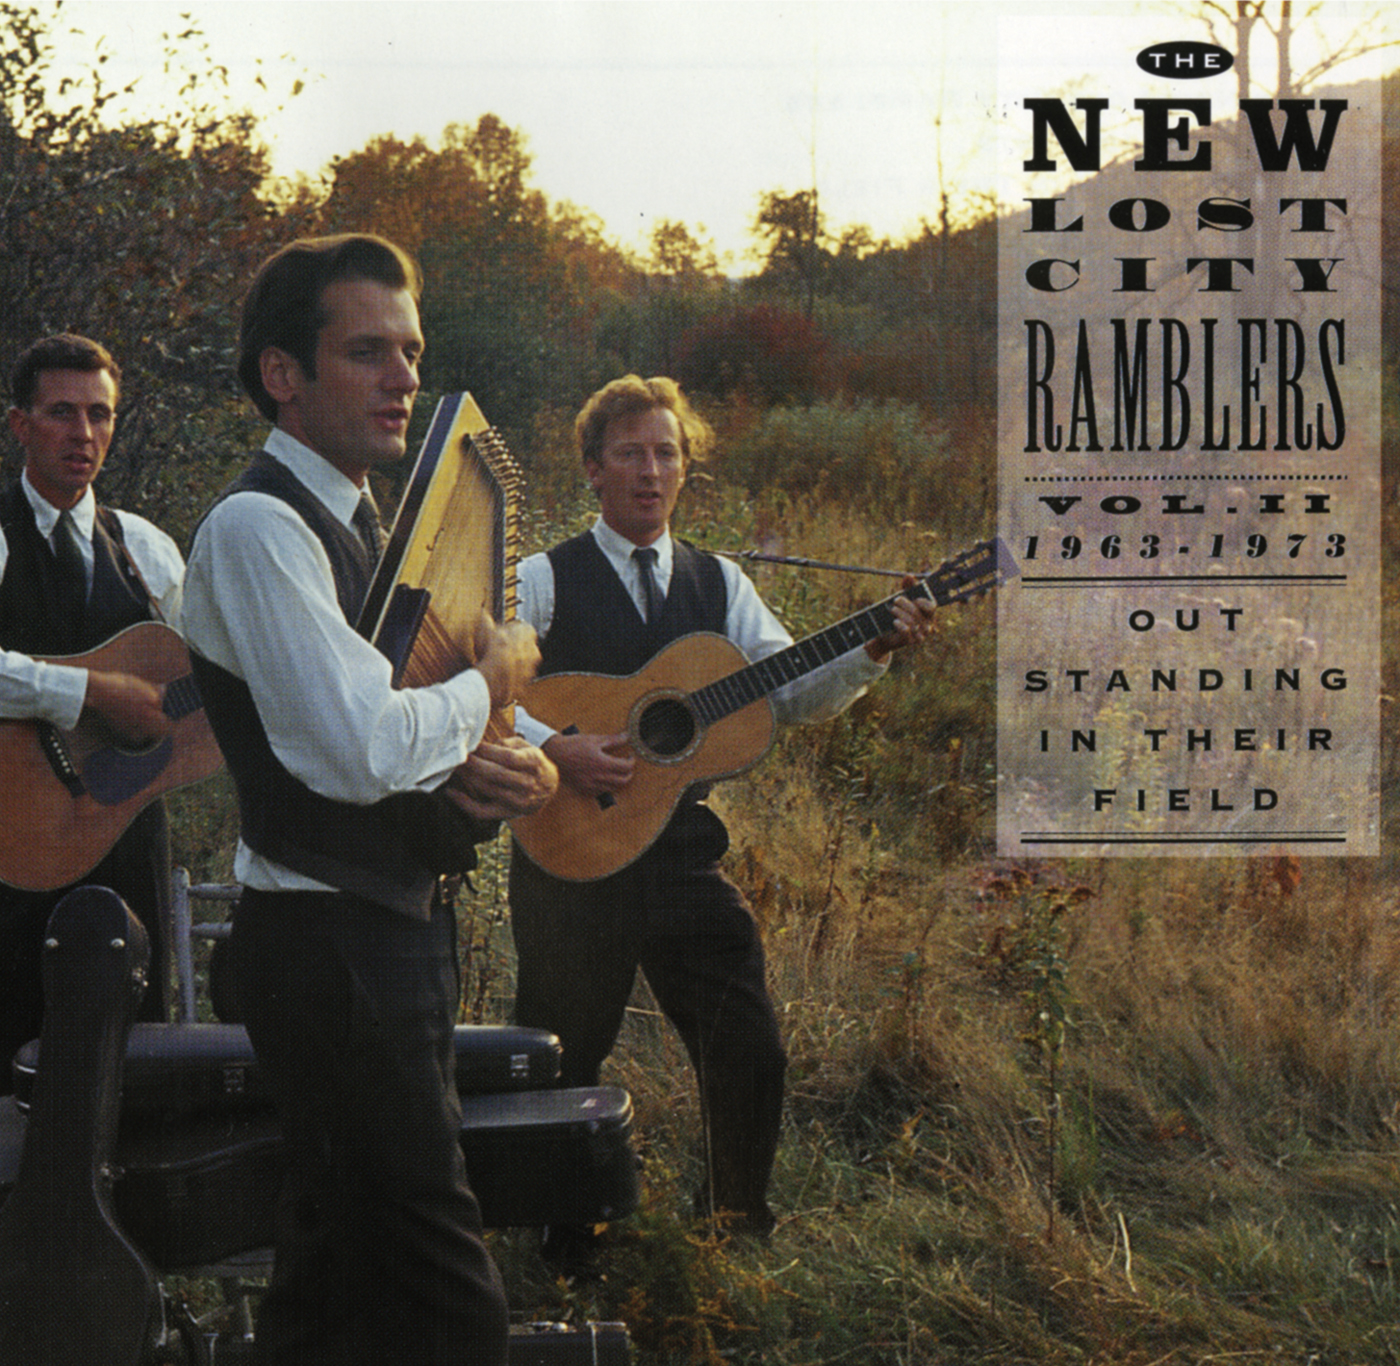 out standing in their field  the new lost city ramblers